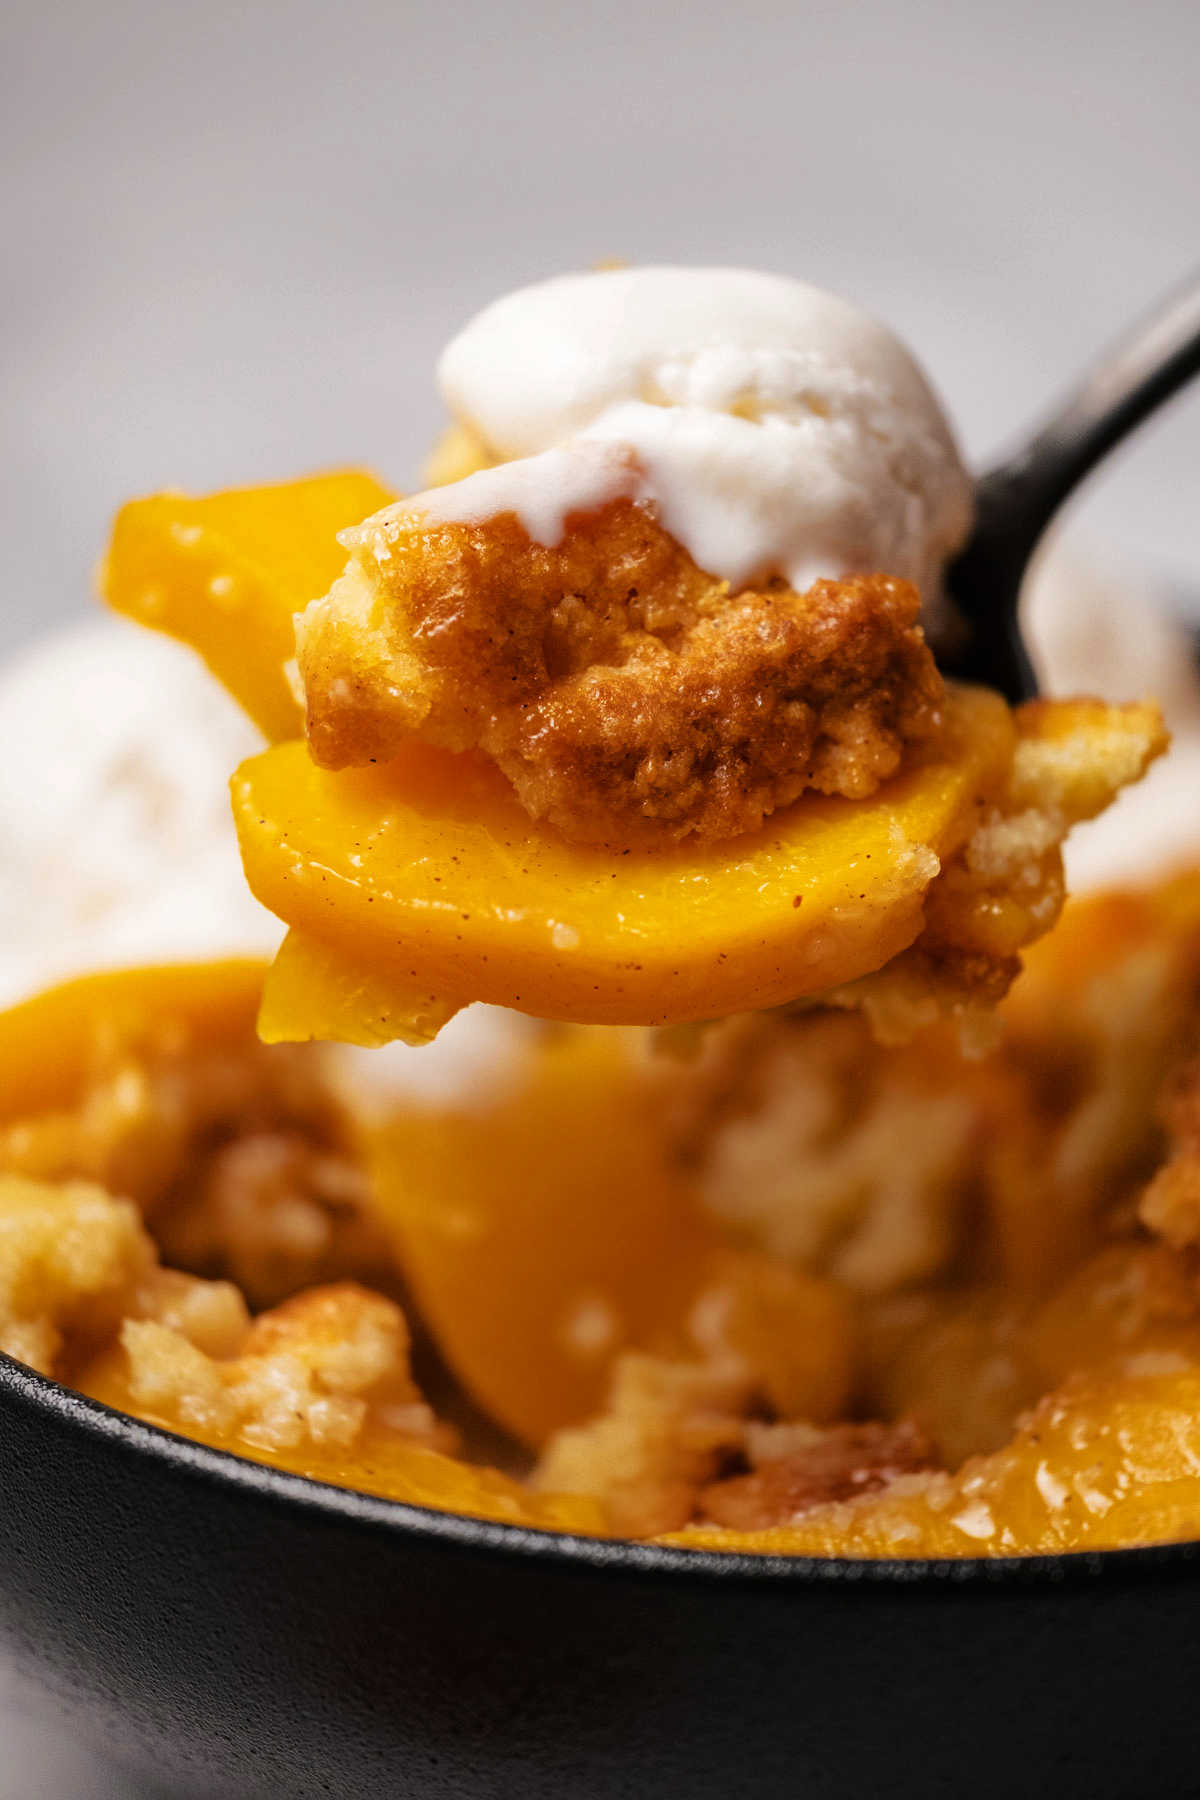 Spoonful of peach cobbler and ice cream.